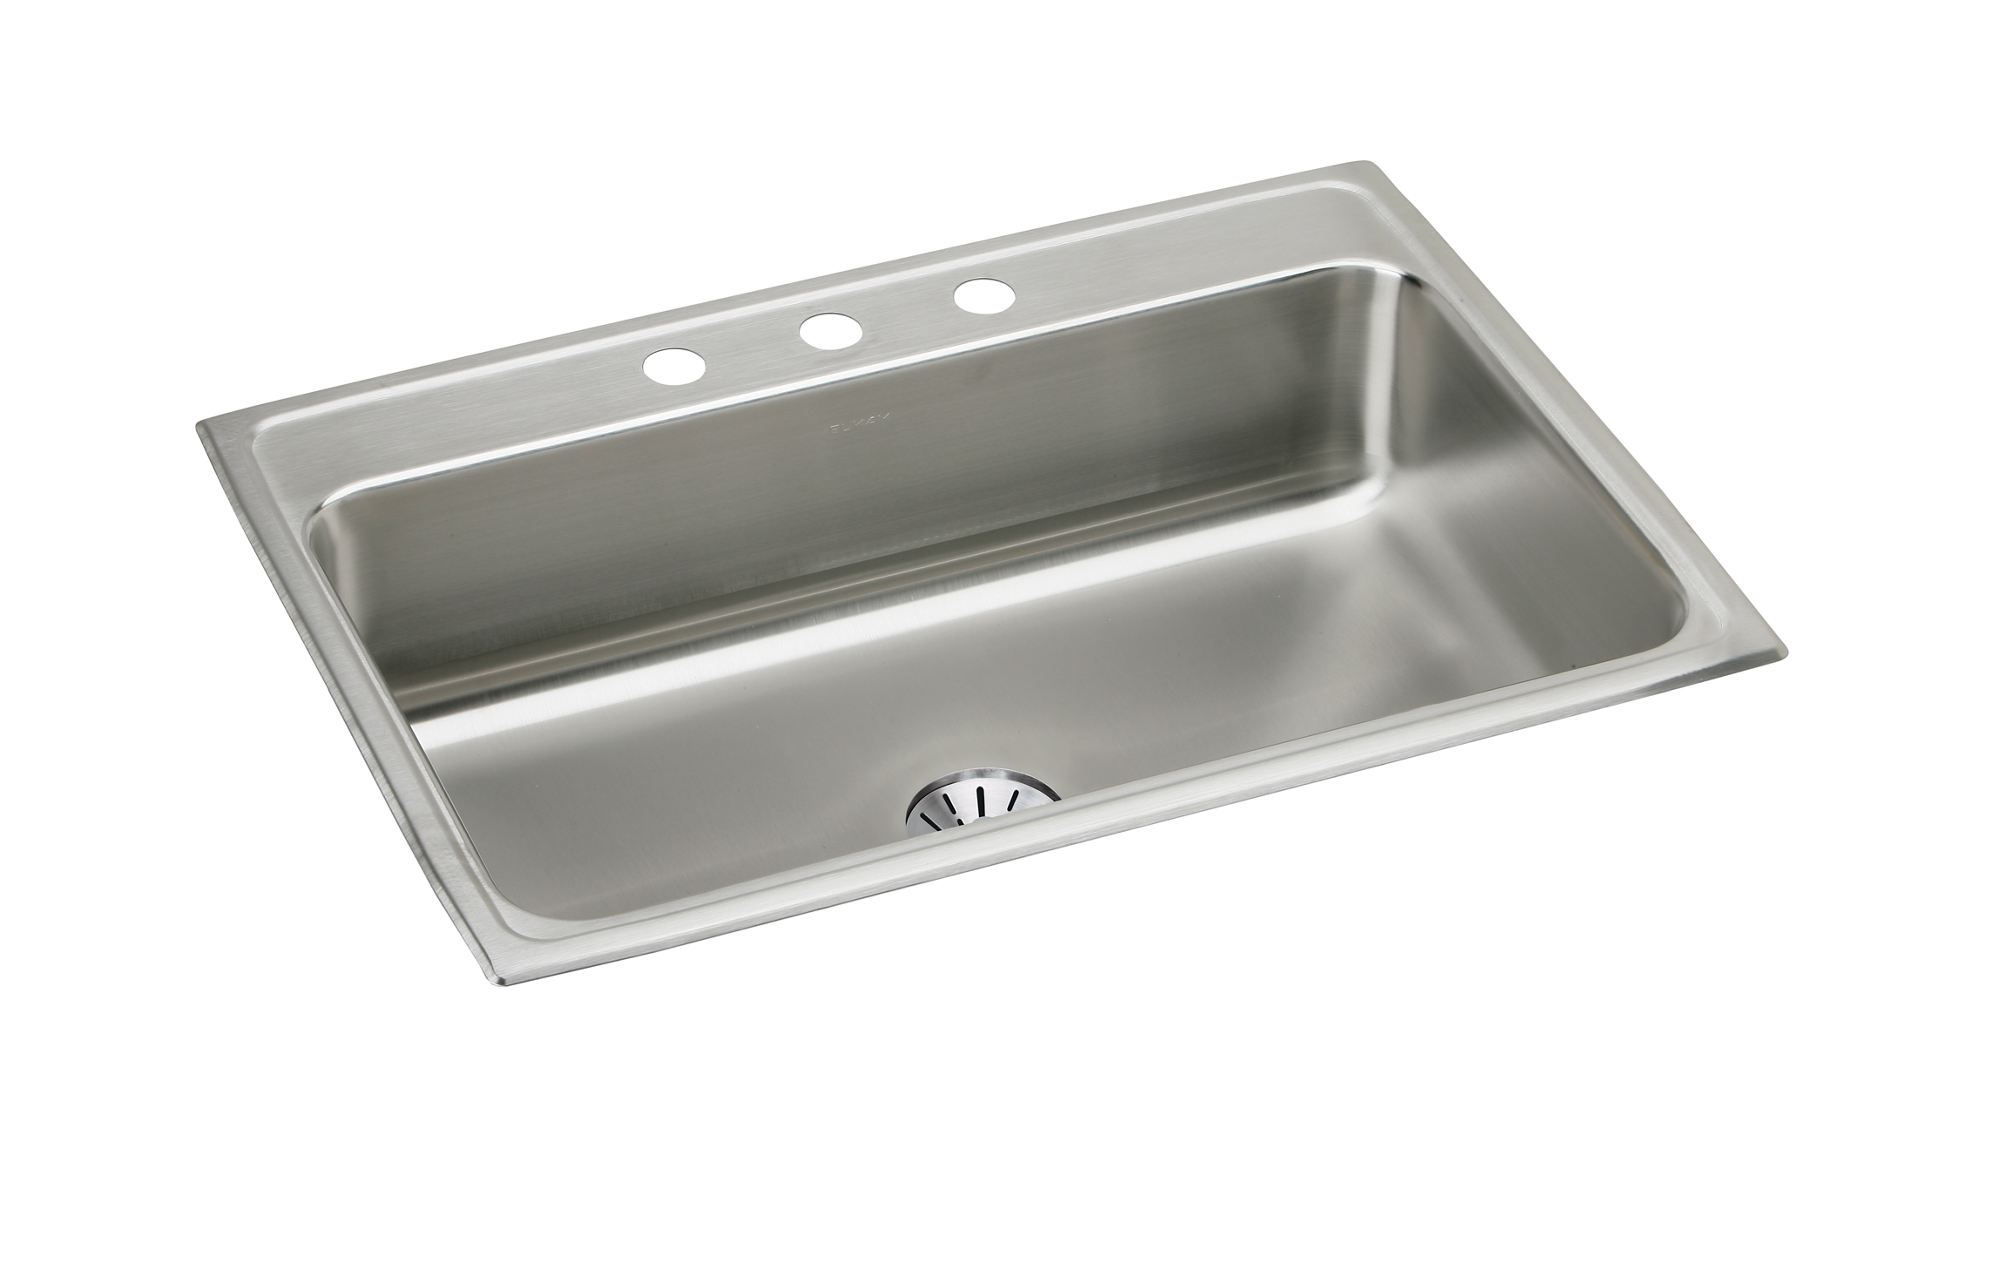 Elkay Lustertone LR3322PDMR2 Equal Double Bowl Top Mount Stainless Steel Sink with Perfect Drain